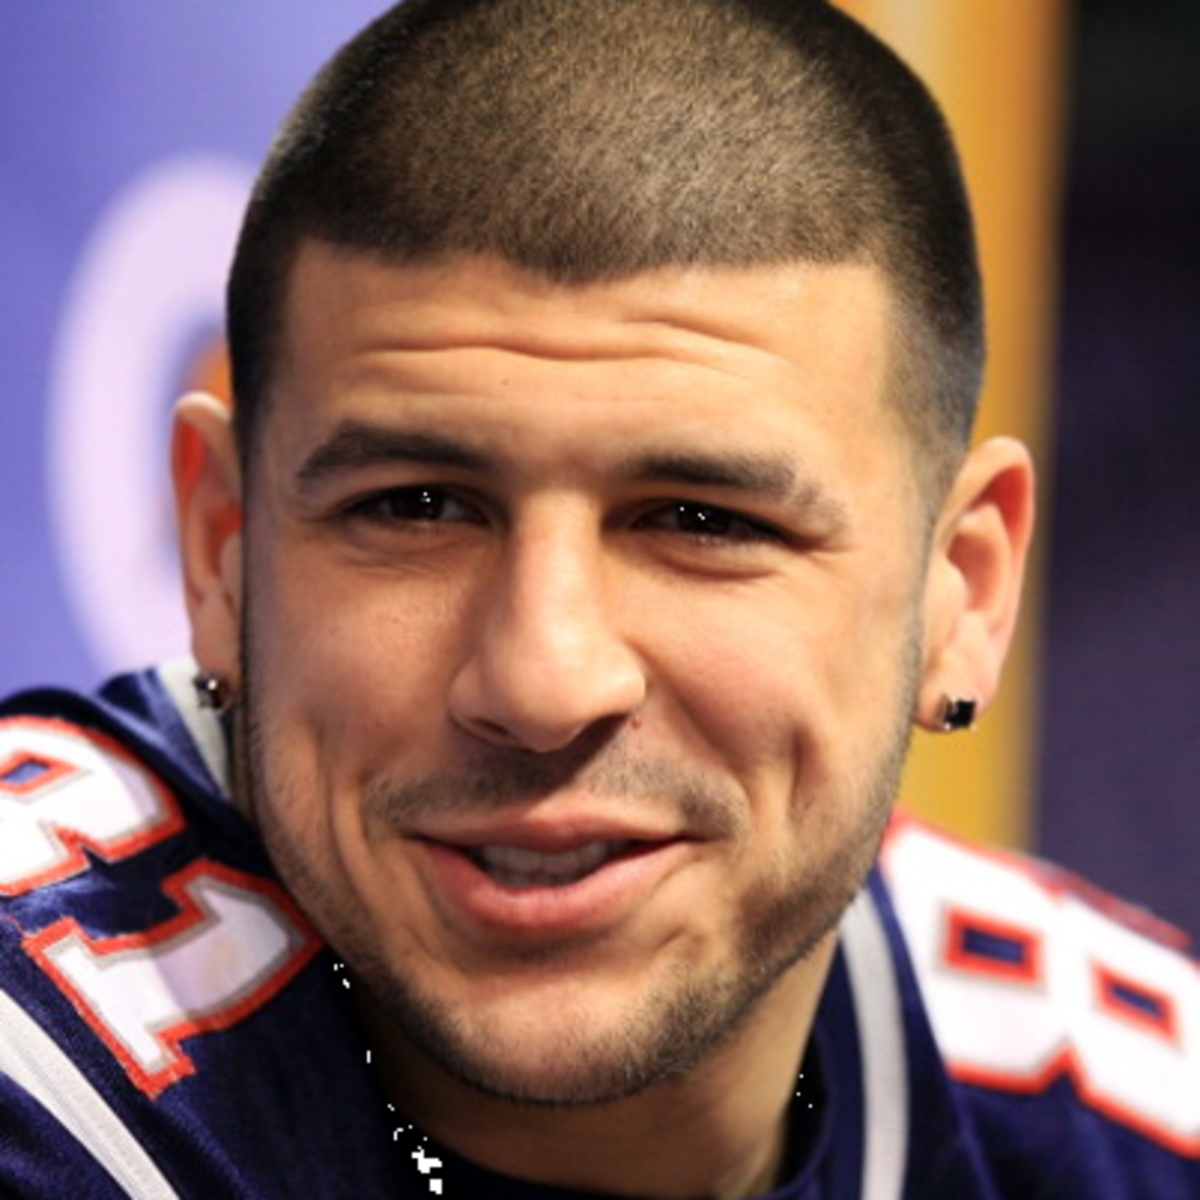 As a New England Patriot, Hernandez proved he could thrive at the game's top level, but the troubled athlete's life would soon take a criminal turn.